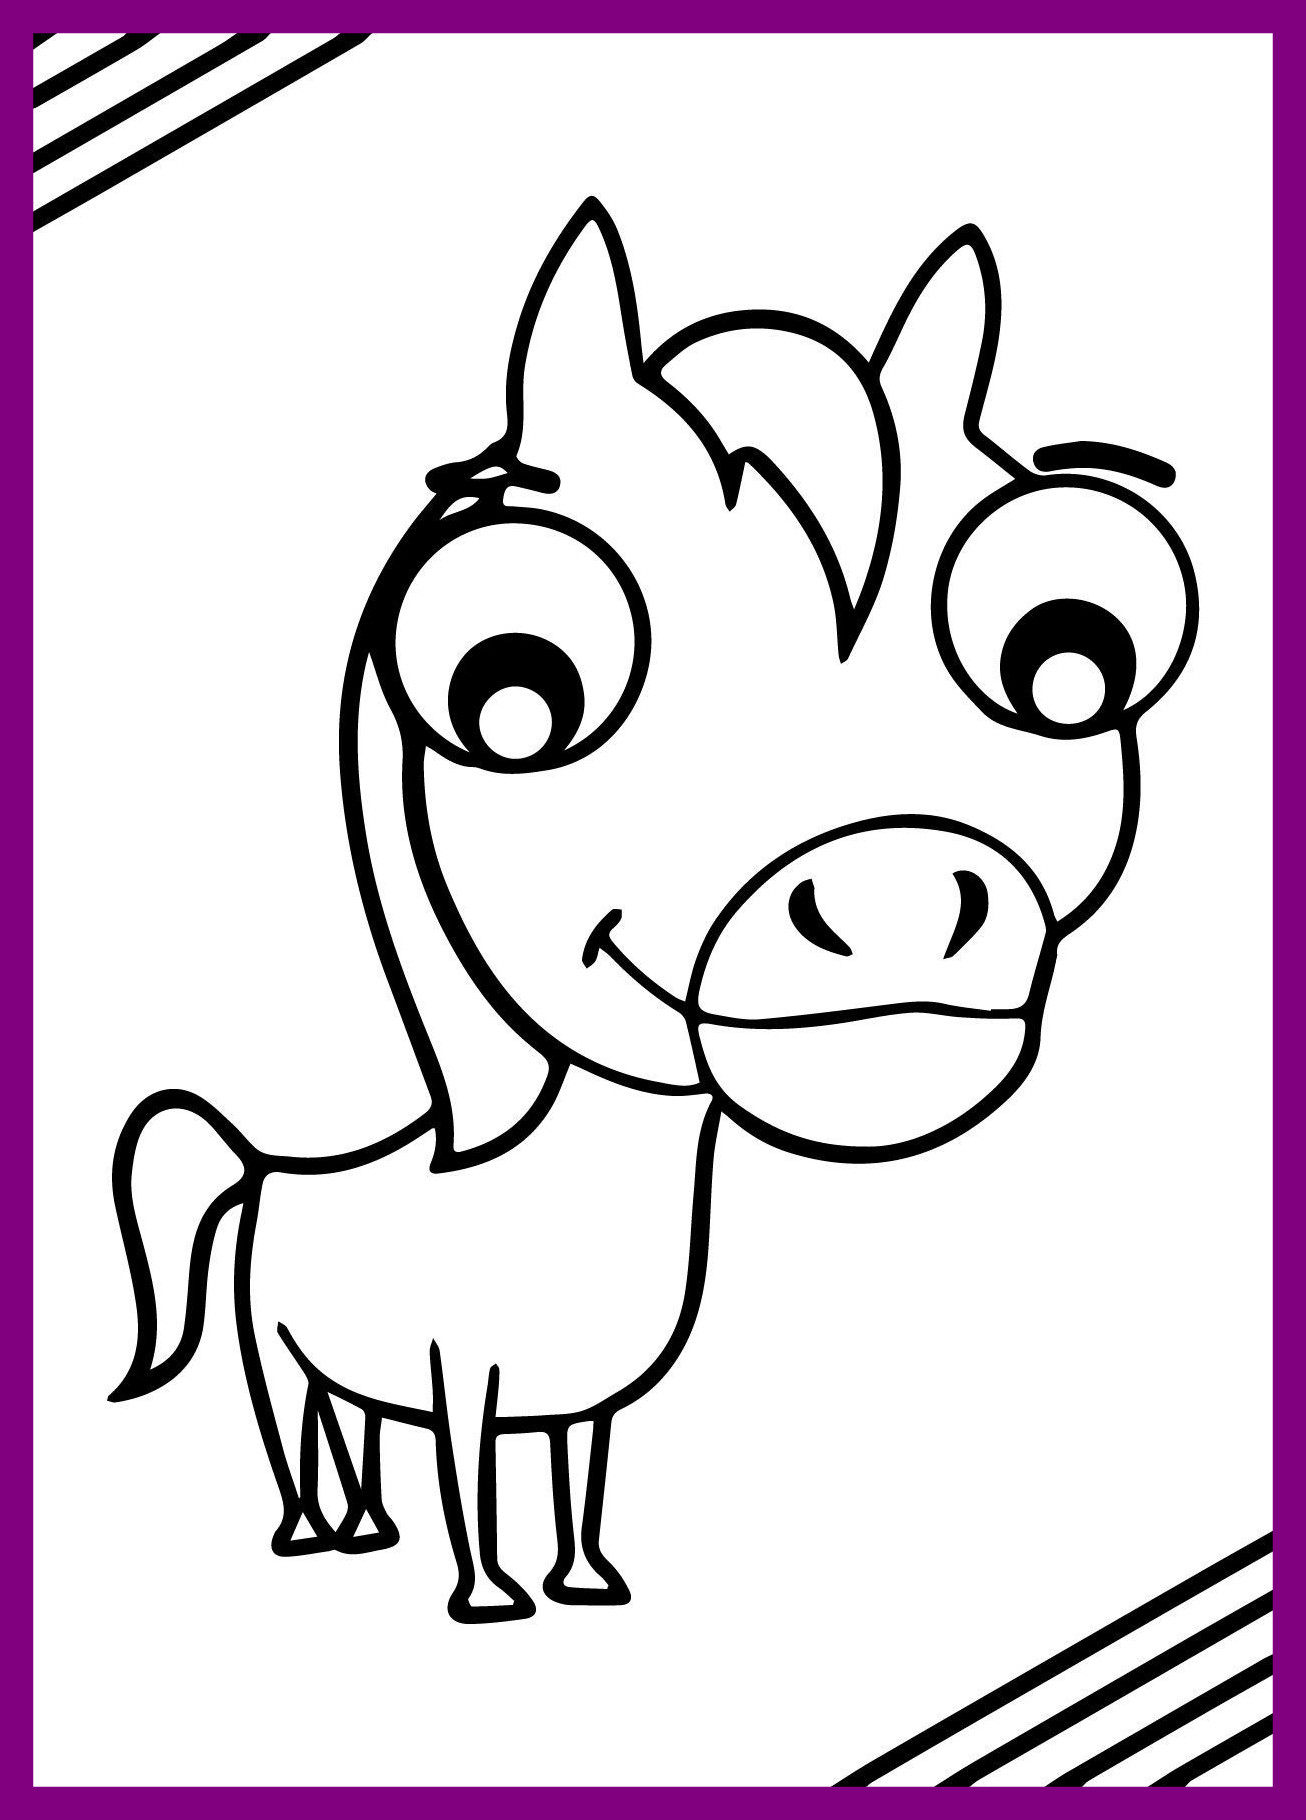 1306x1820 Amazing Pony Clipart Outline Pencil And In Color For Cartoon Horse